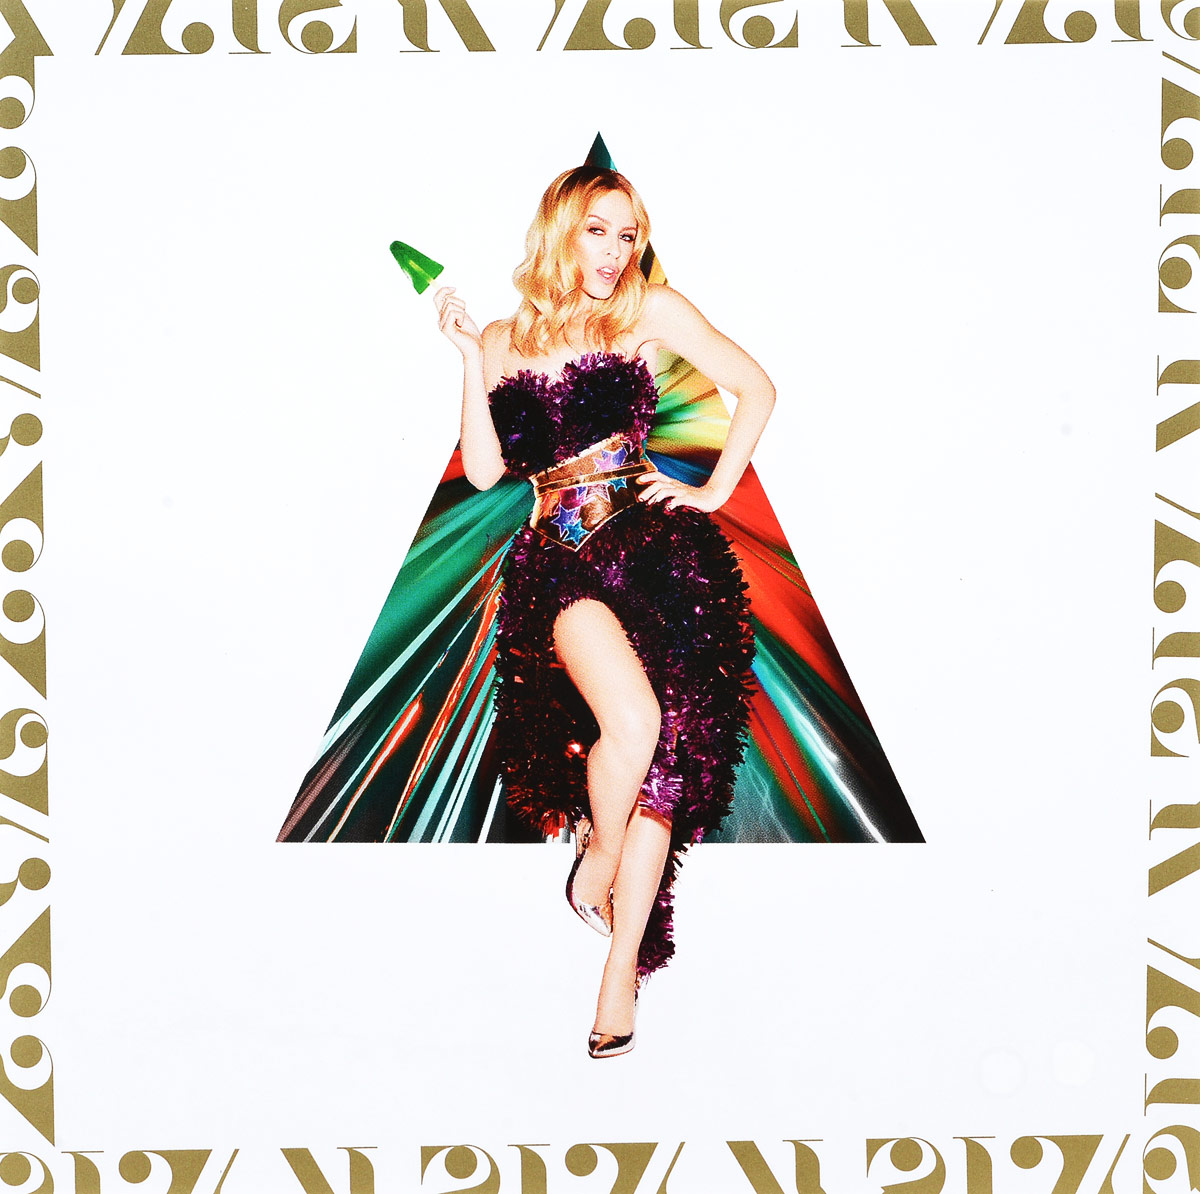 Кайли Миноуг Kylie Minogue. Kylie Christmas. Snow Queen Edition кайли миноуг kylie minogue kiss me once cd dvd